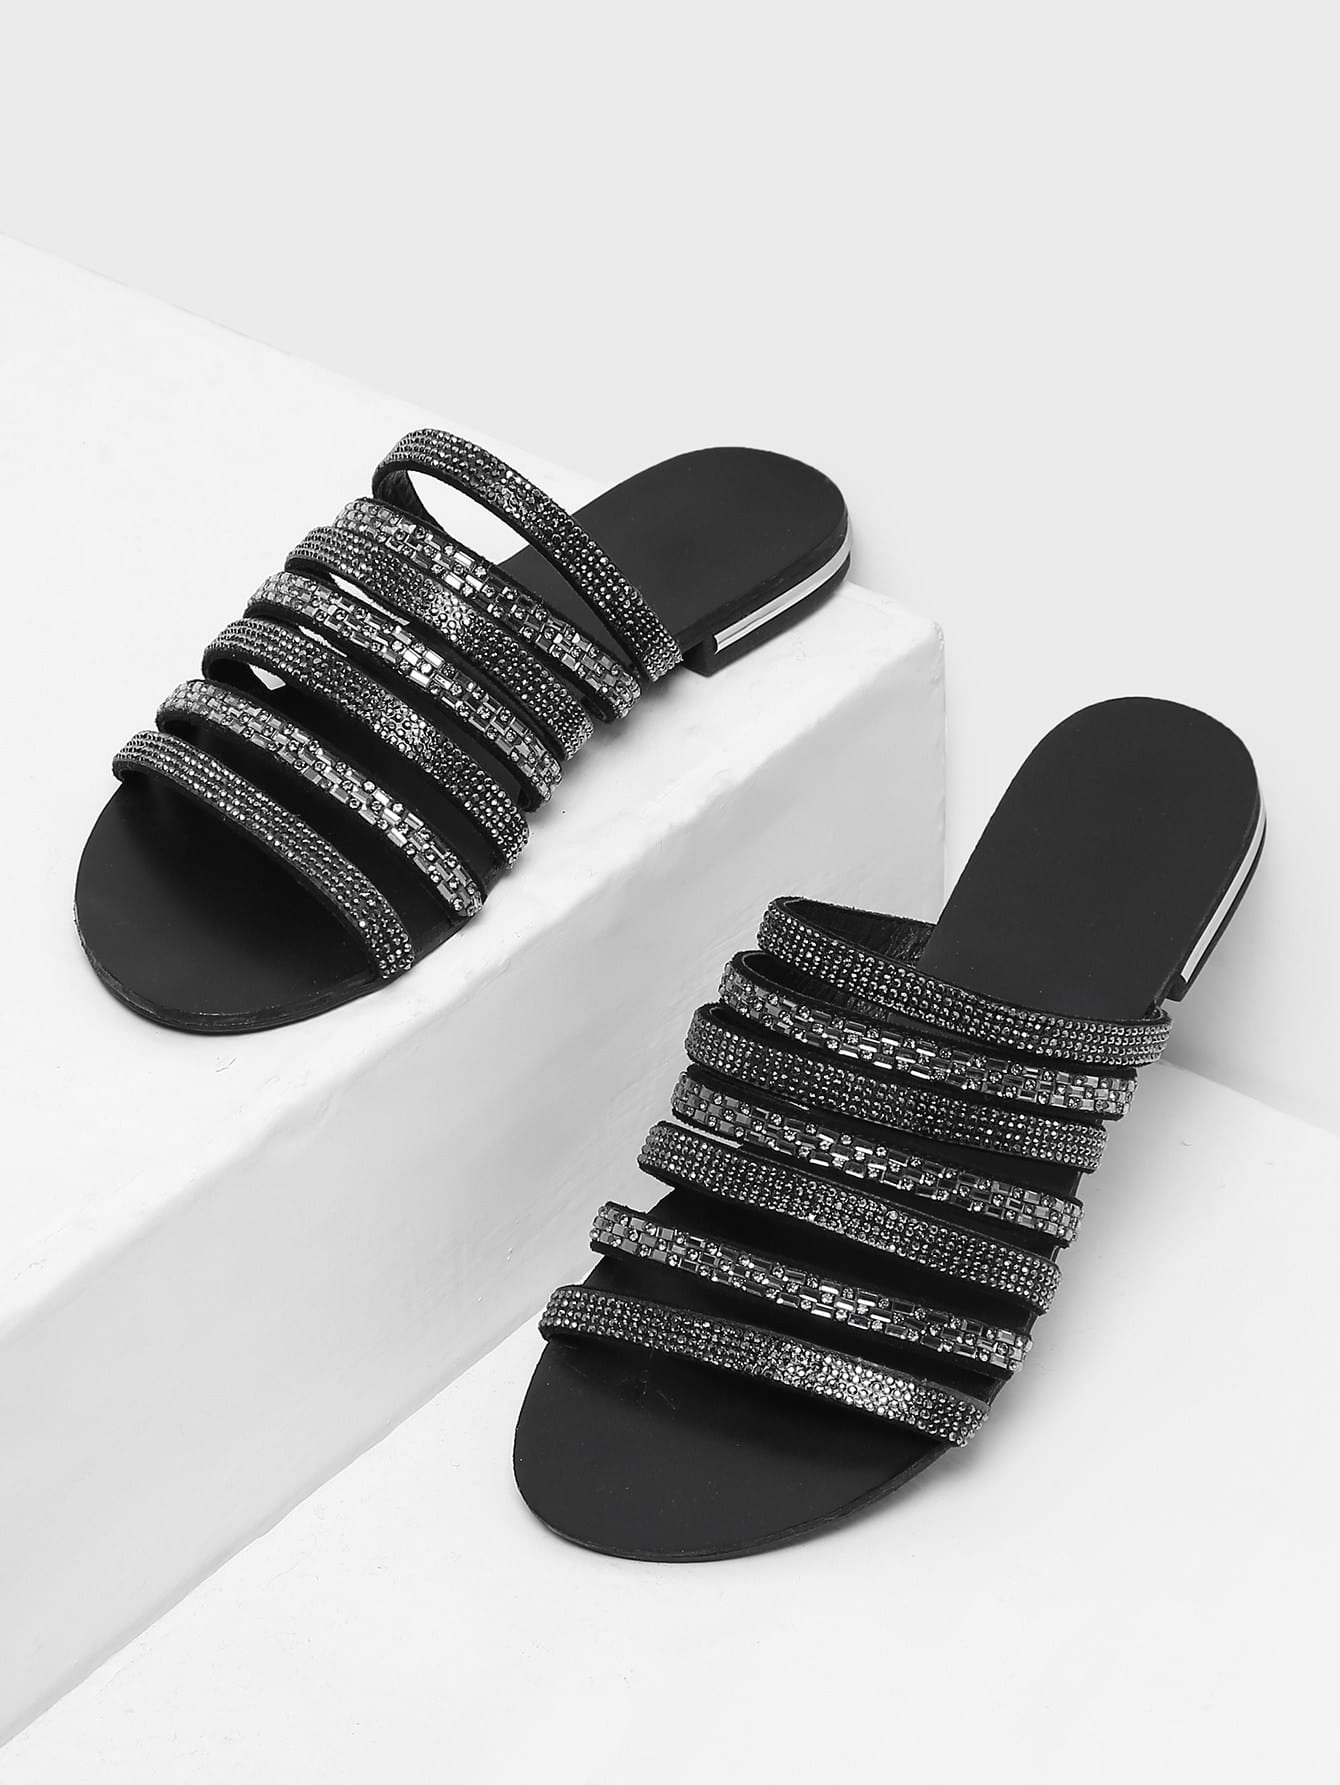 Rhinestone Detail Strappy Sandals rhinestone detail strappy sandals